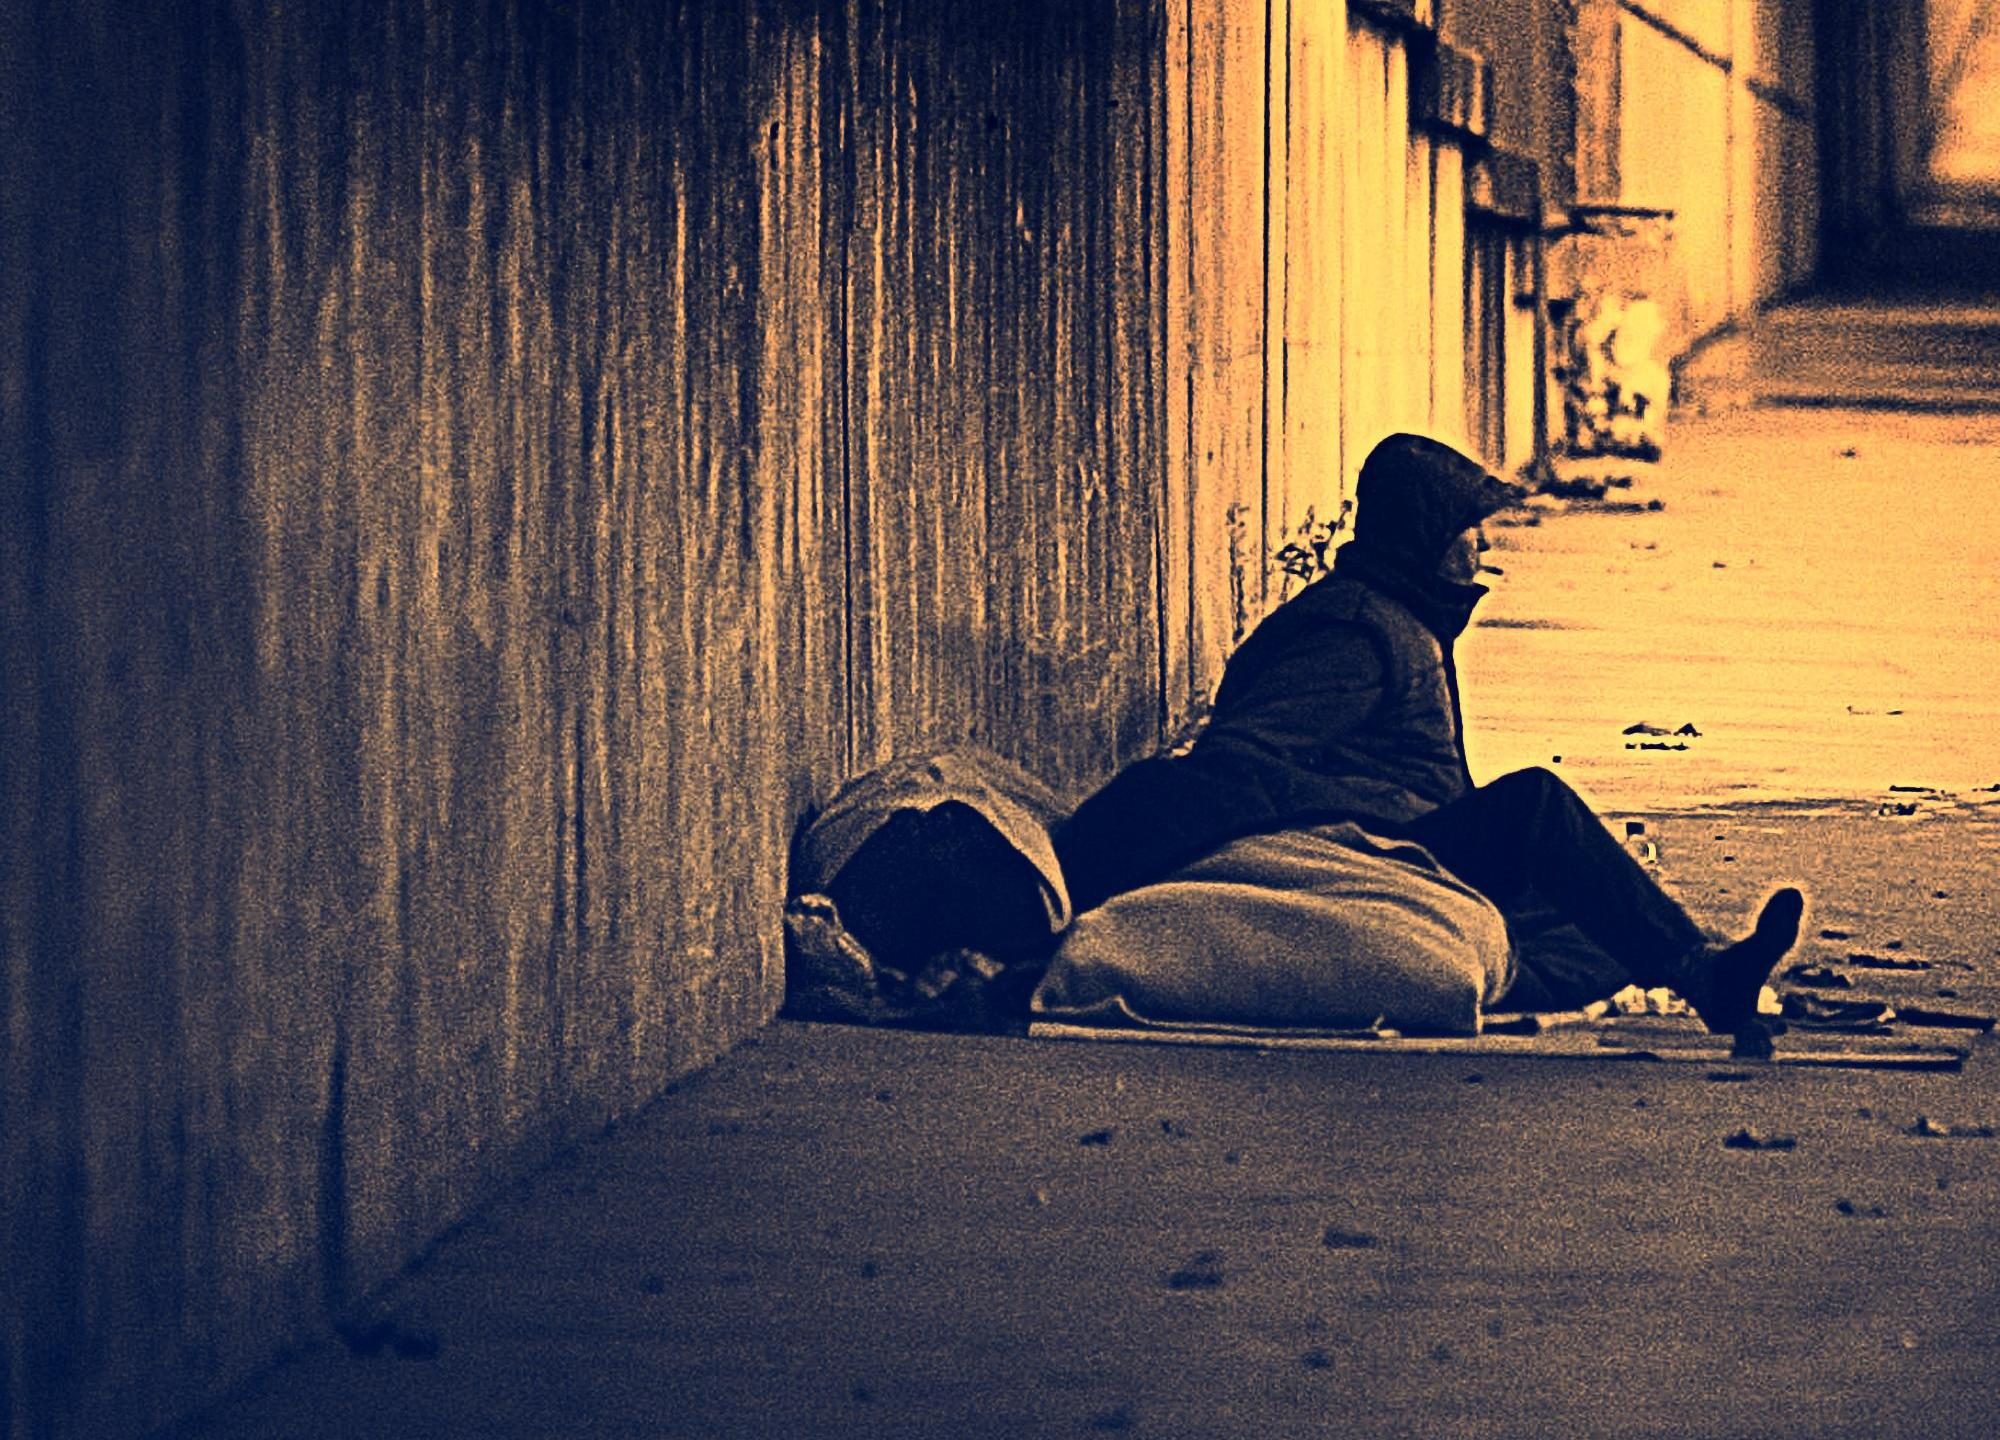 The Poor_Homeless_404098